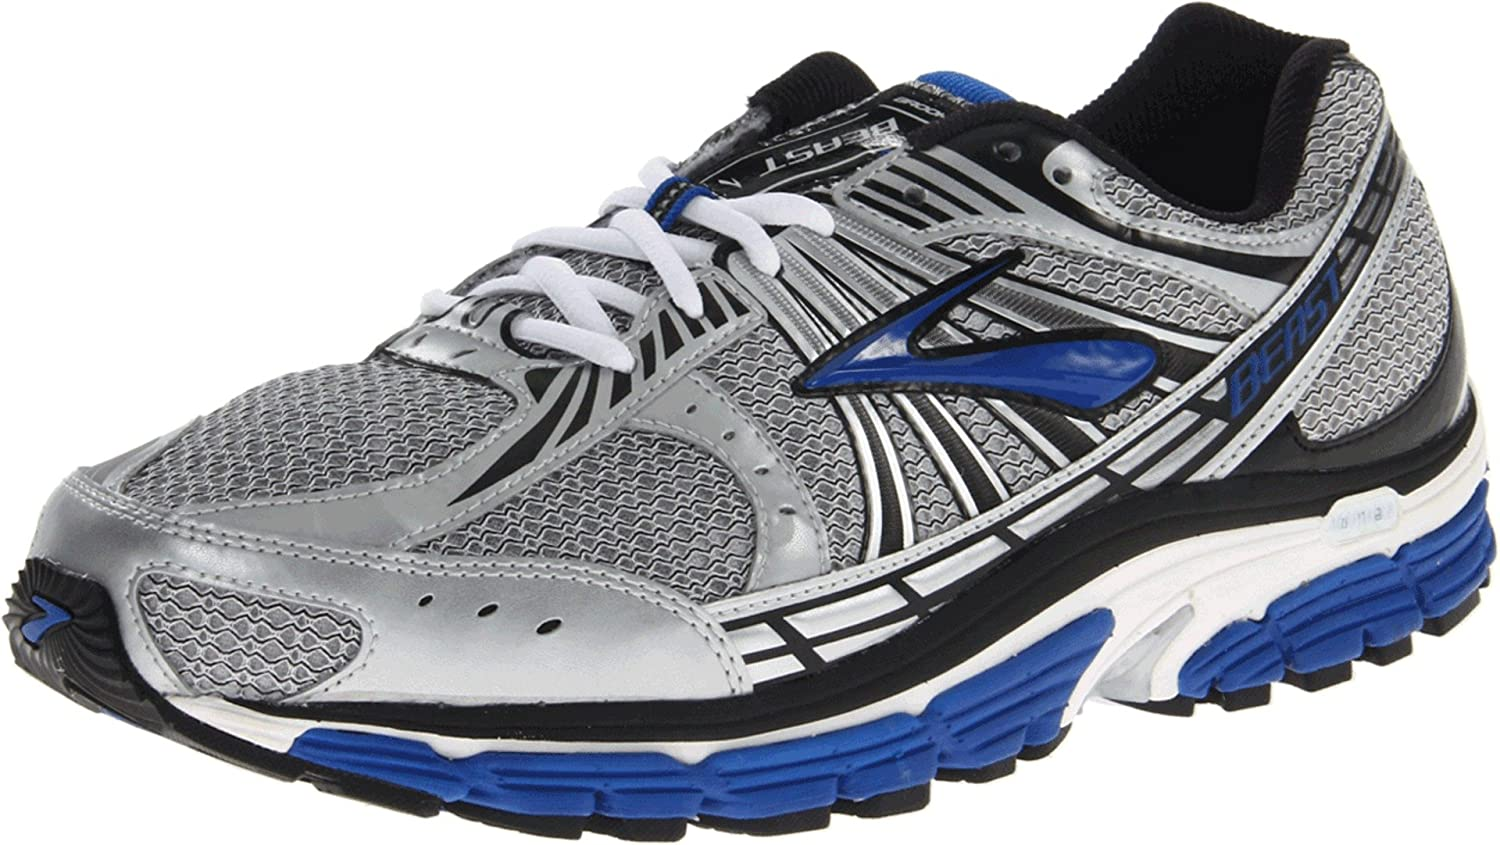 Men's Brooks Beast '12 Running Shoes for Plantar Fasciitis